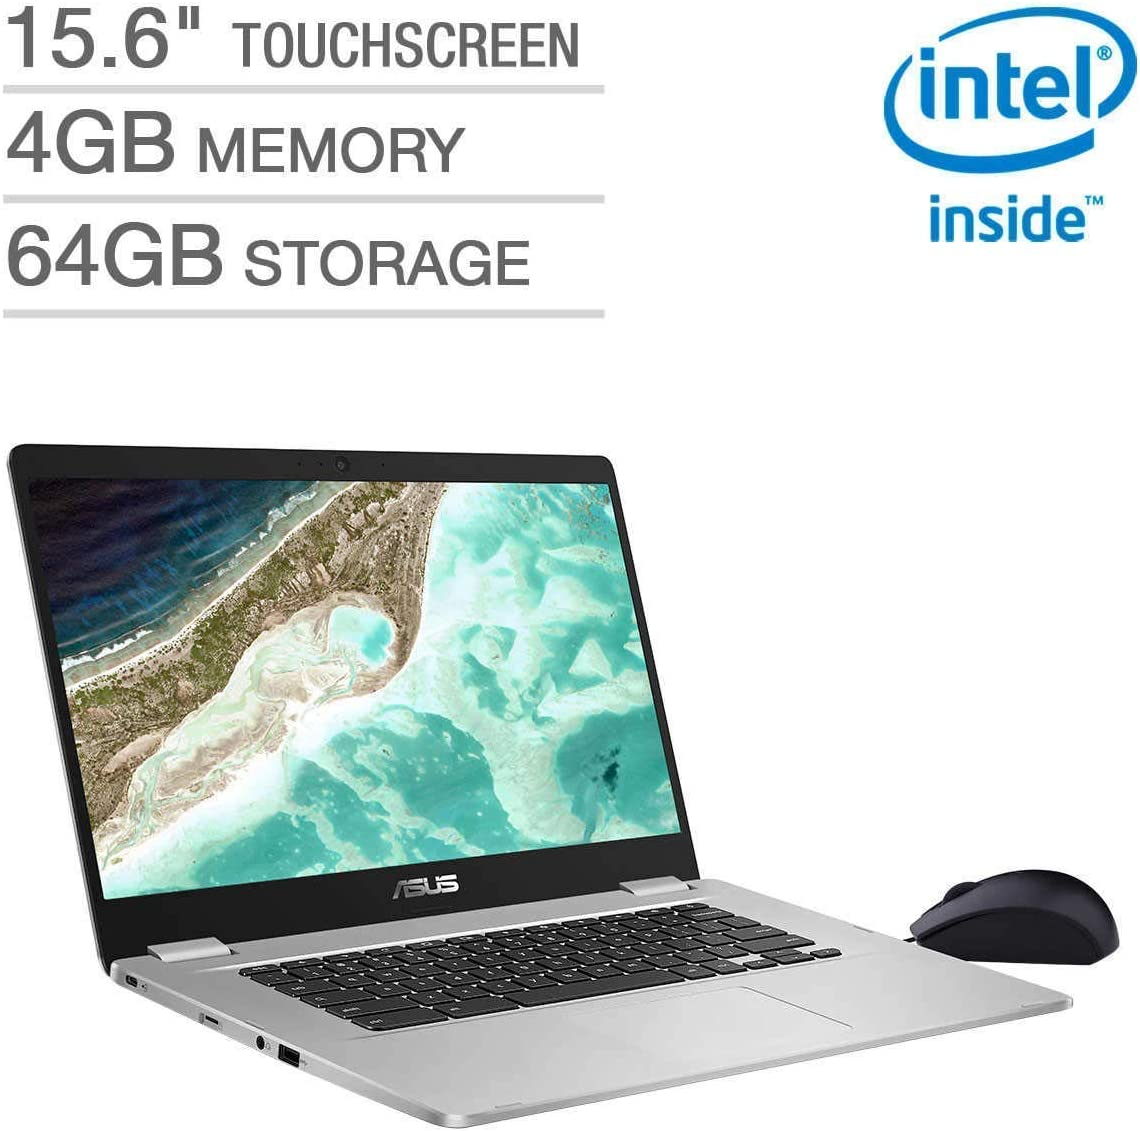 "2019 Asus 15.6"" FHD Touchscreen Thin and Light Chromebook Laptop Computer, Intel Quad-Core Pentium N4200 up to 2.5GHz, 4GB DDR4 RAM, 64GB eMMC, 802.11ac WiFi, Bluetooth 4.0, USB 3.1, Chrome OS"